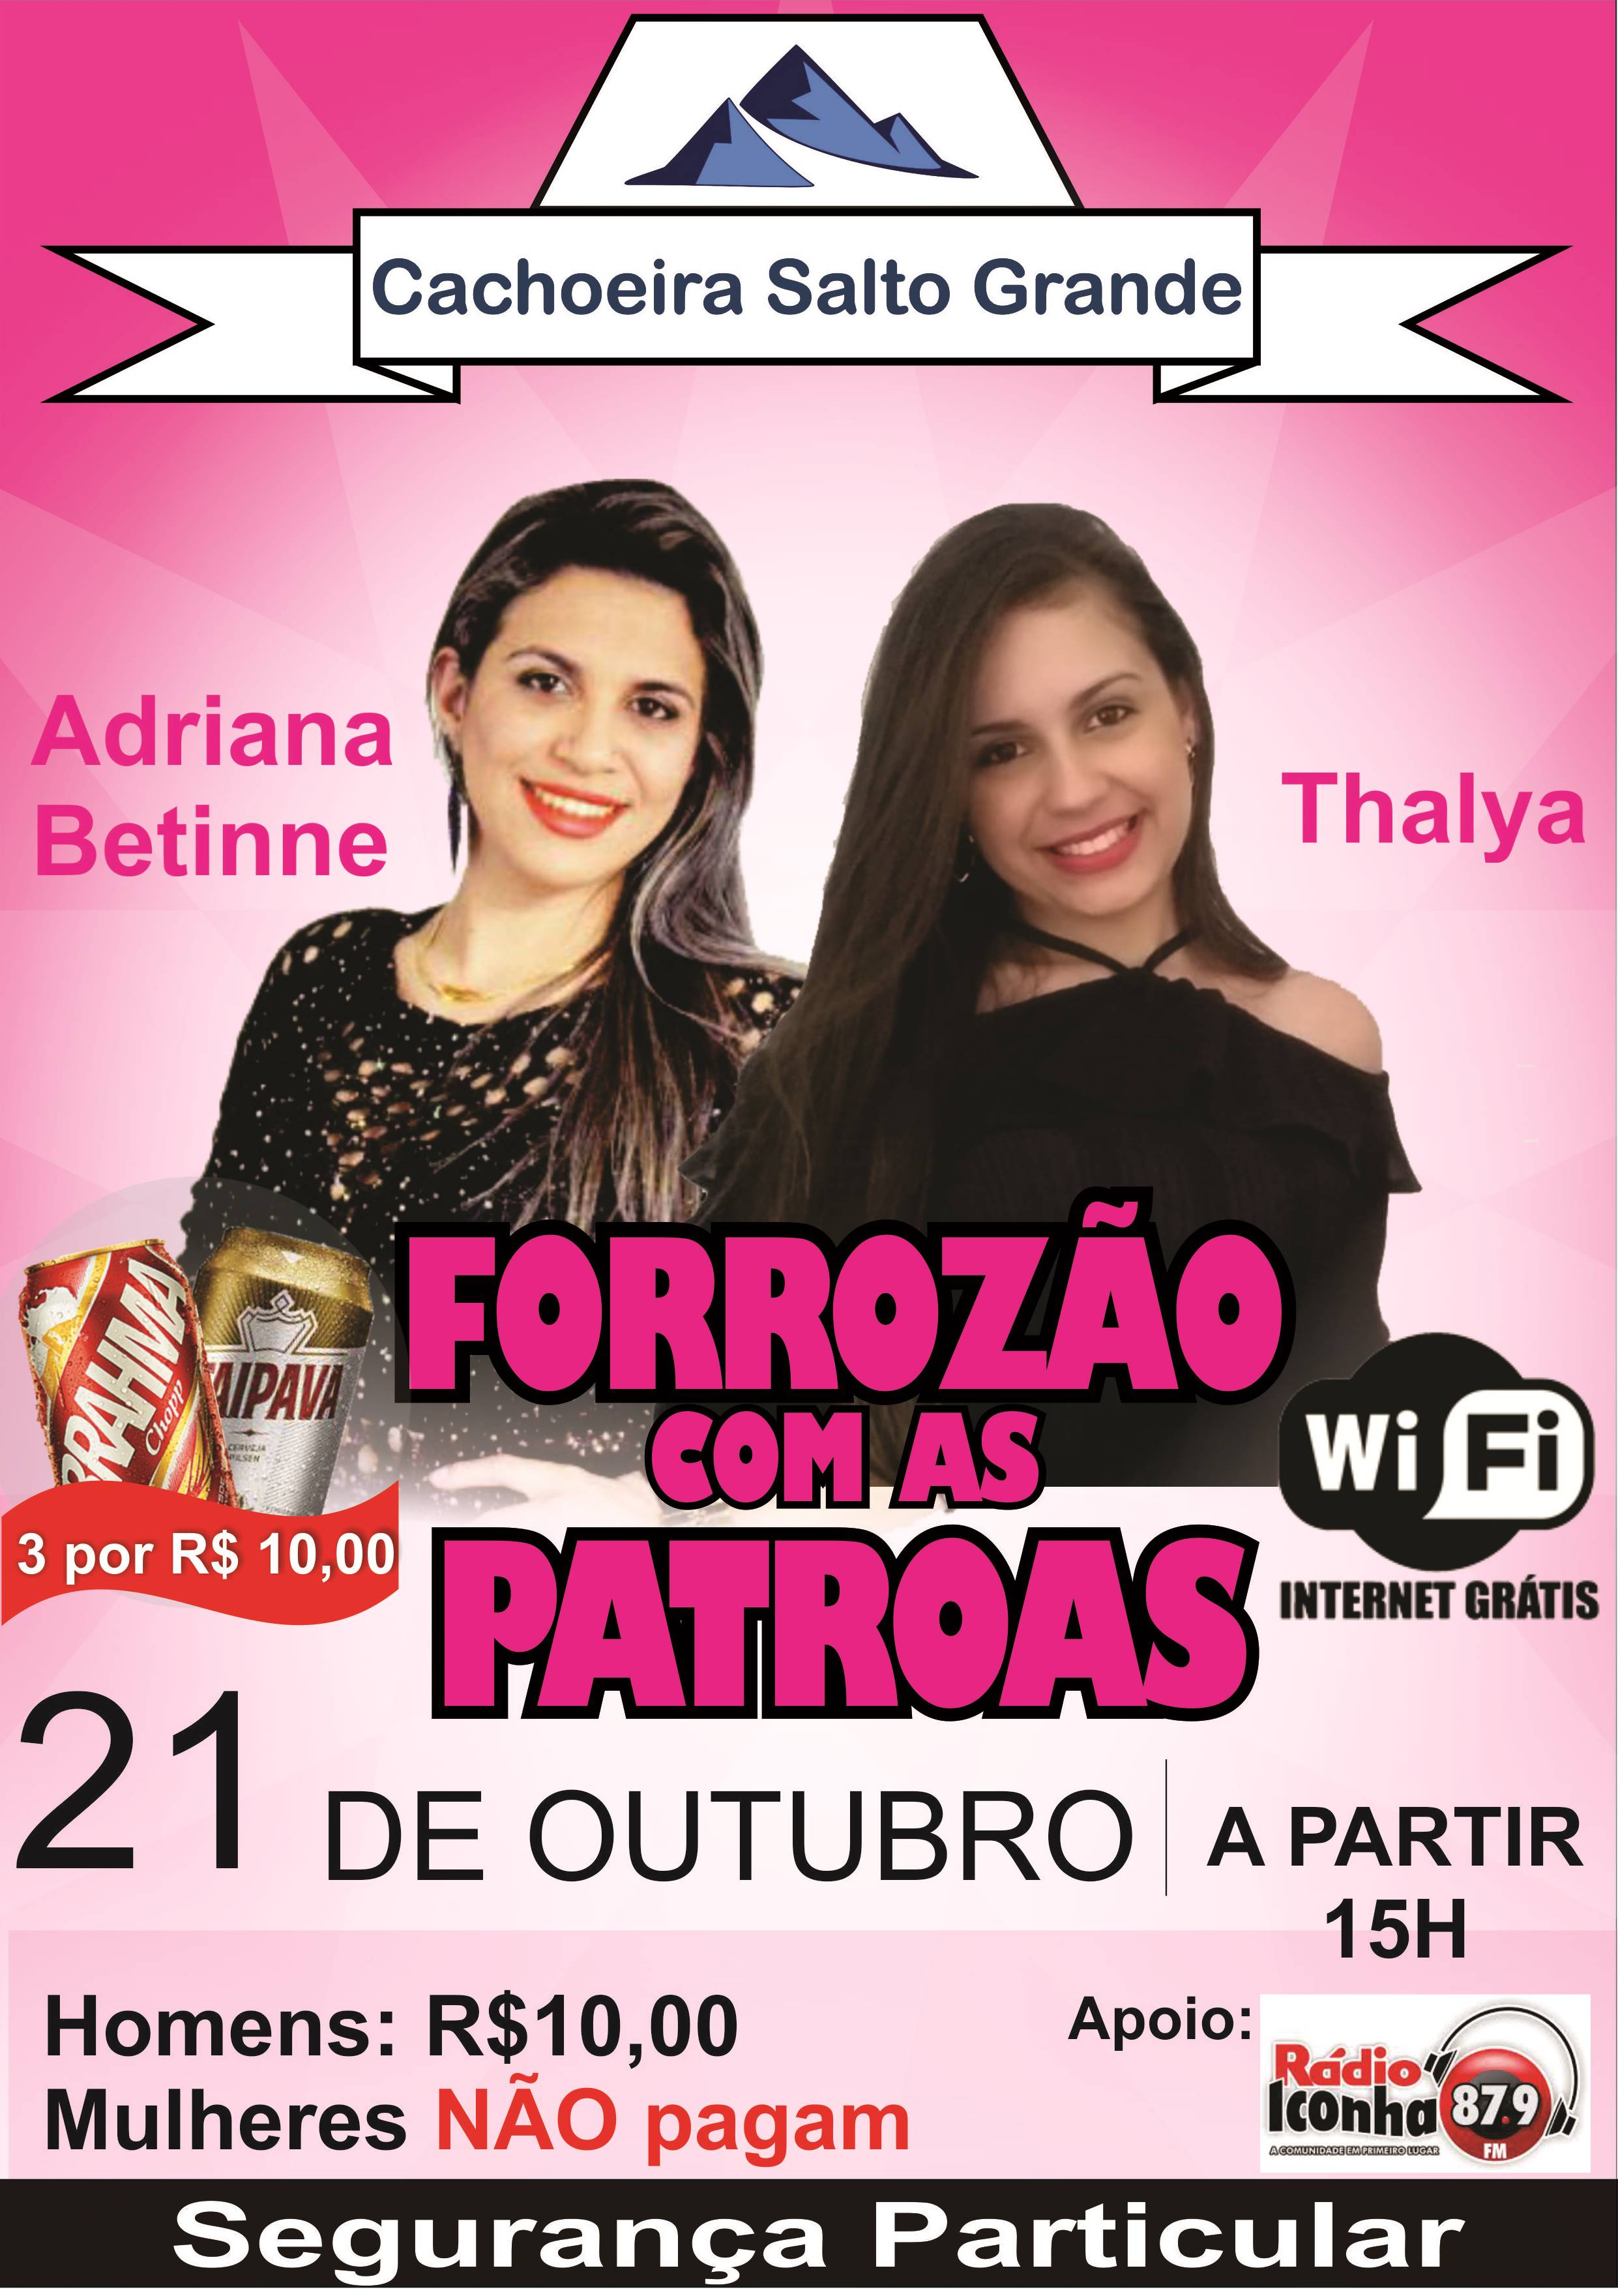 Forrozão com as Patroas